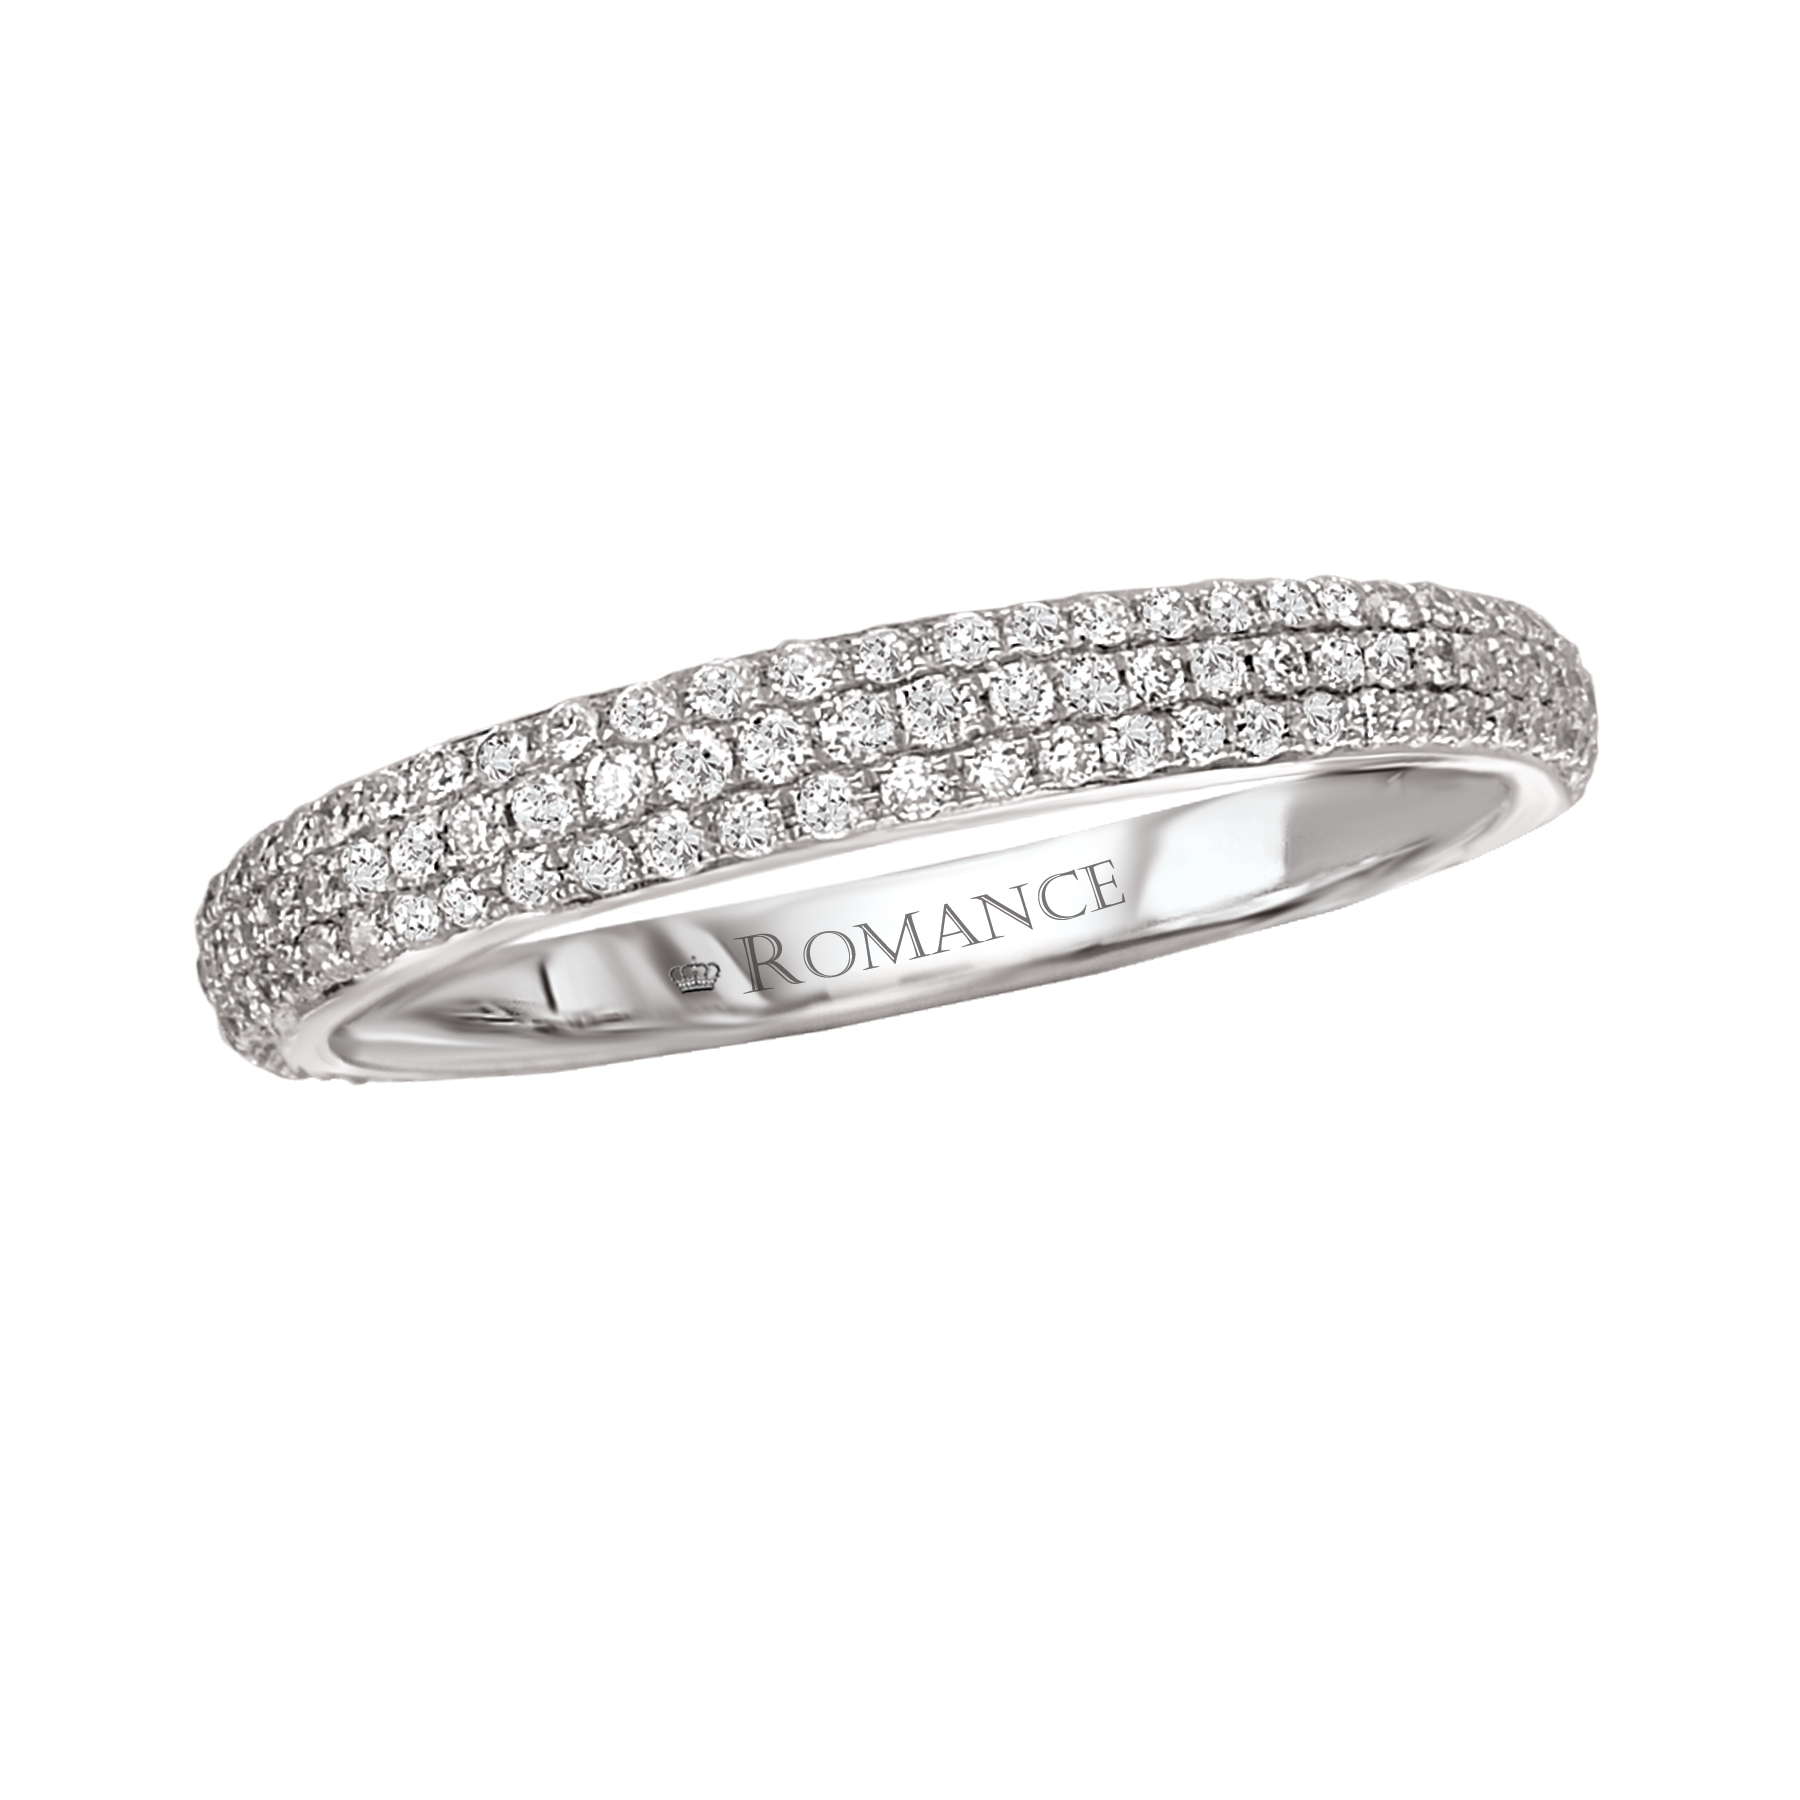 Romance Wedding Bands 118023-W product image